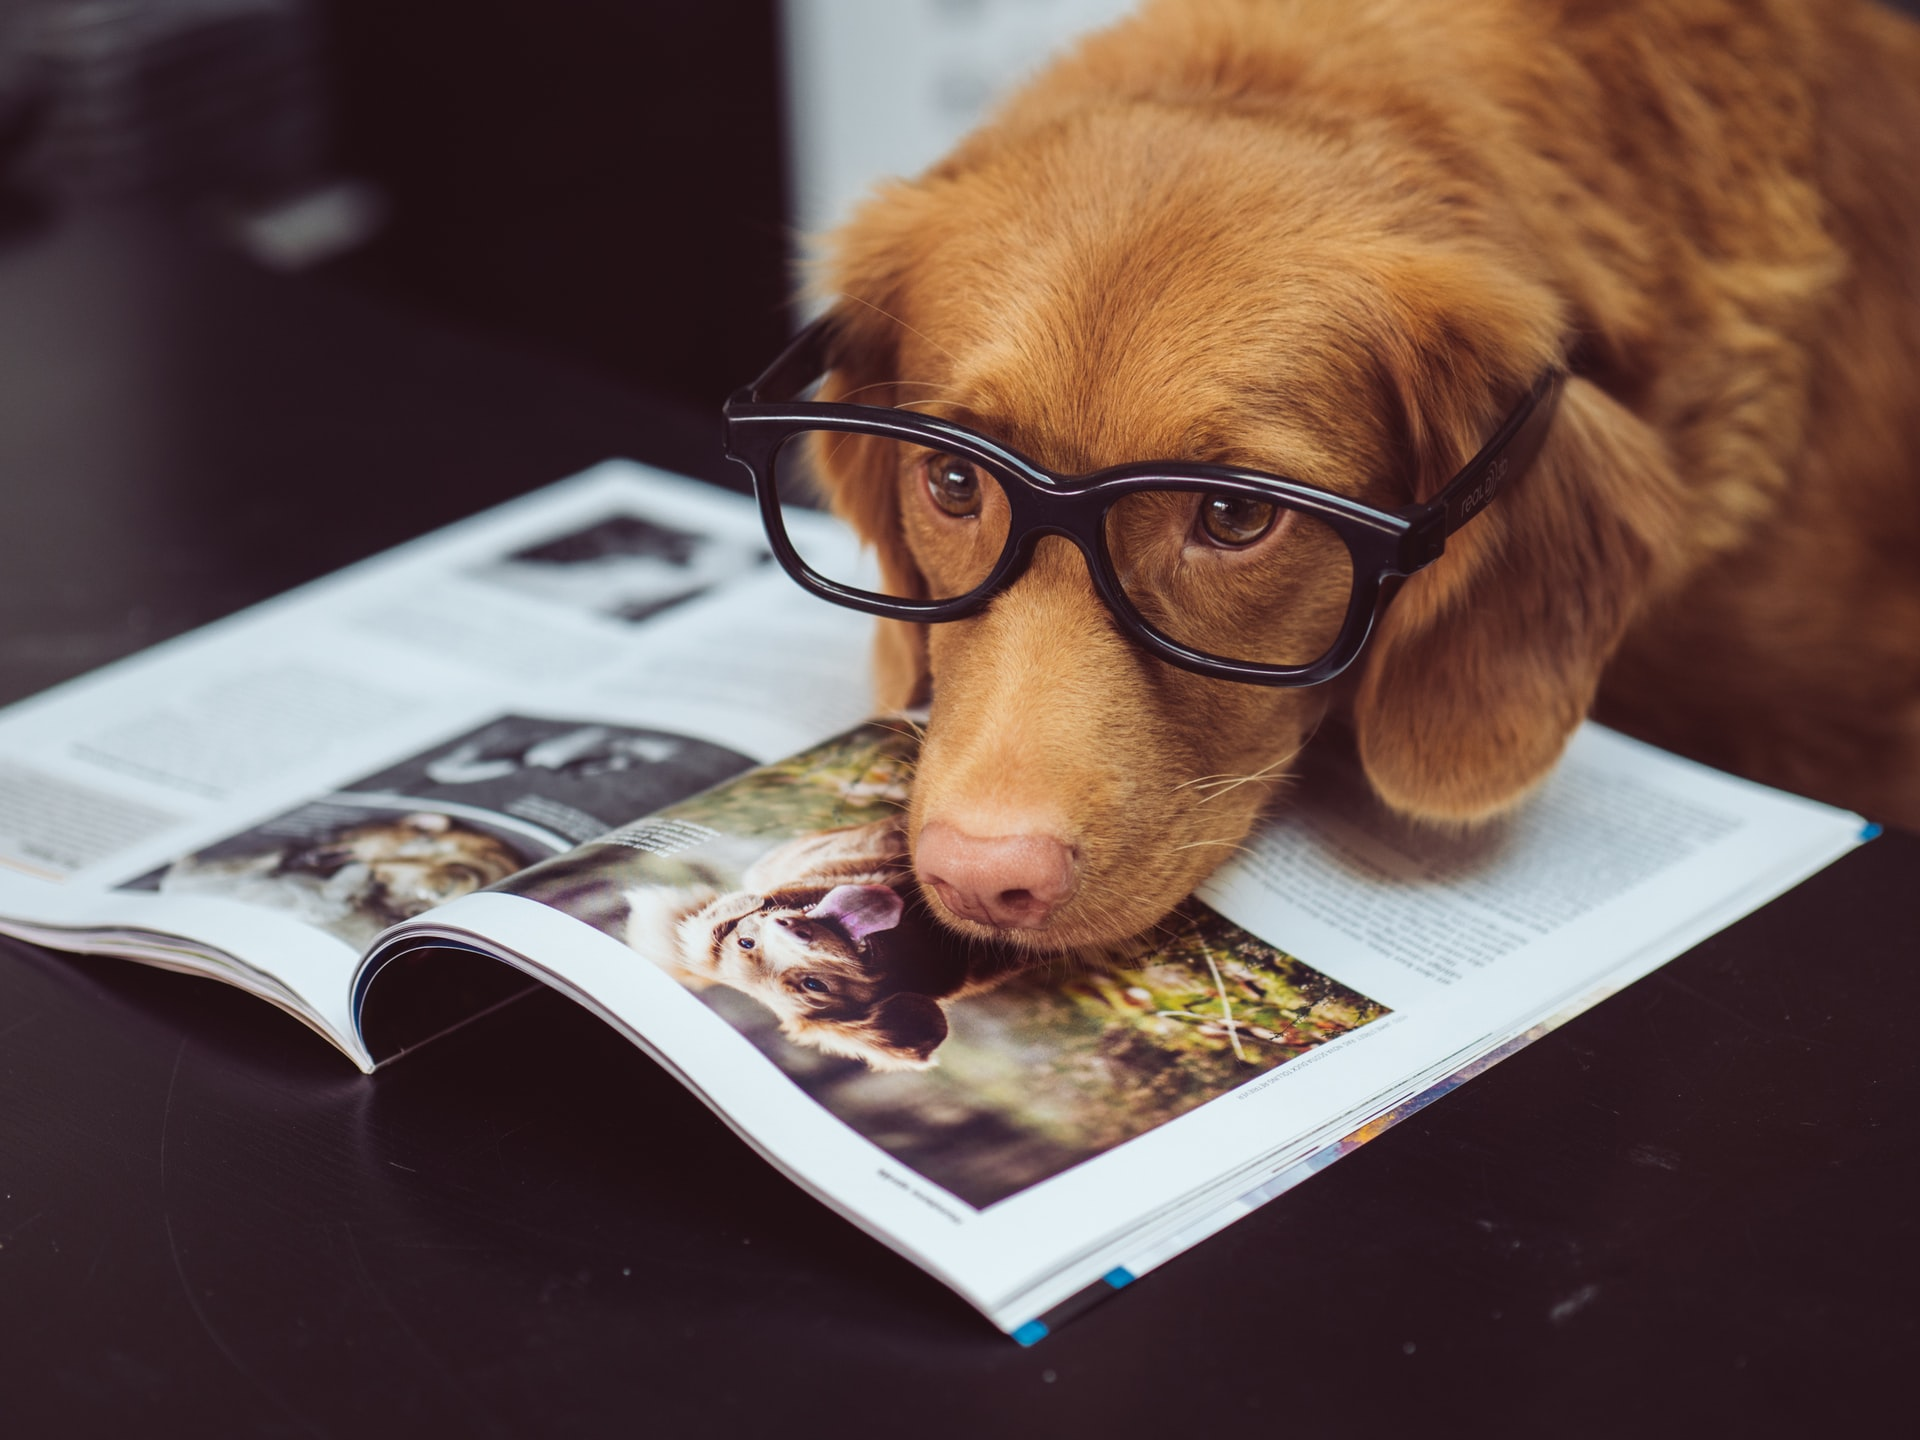 How to know if your dog is actually smart